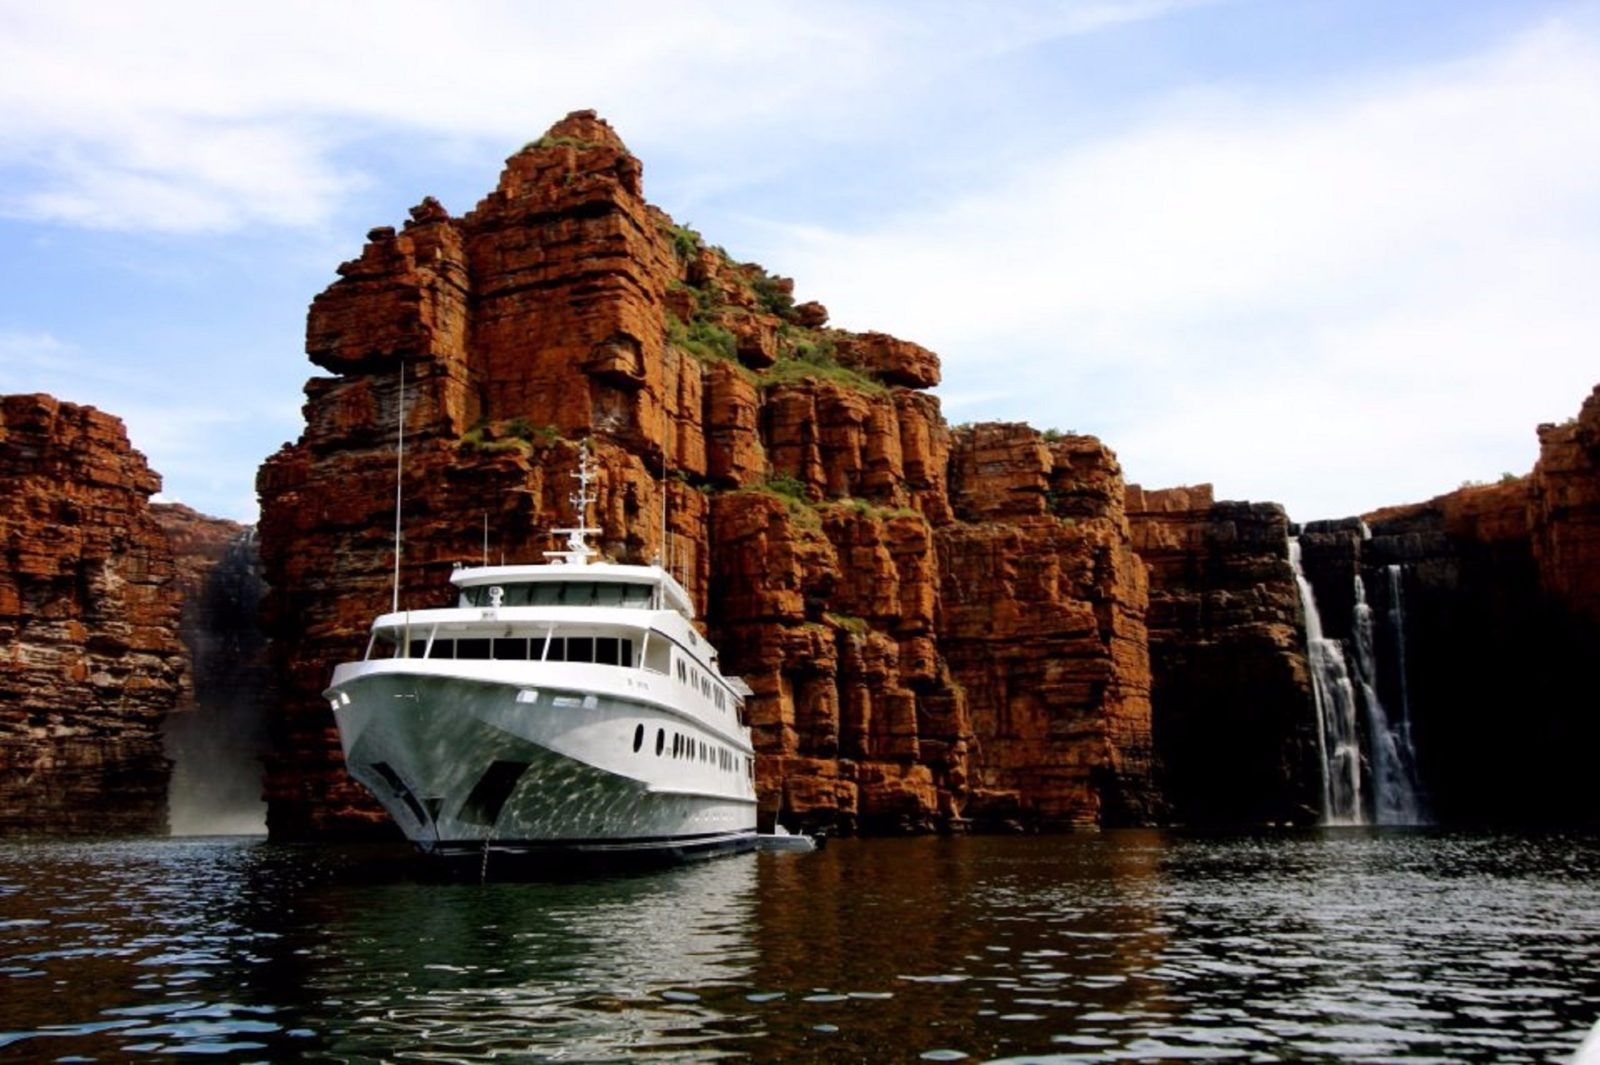 North Star Cruises Australia, Broome, Western Australia